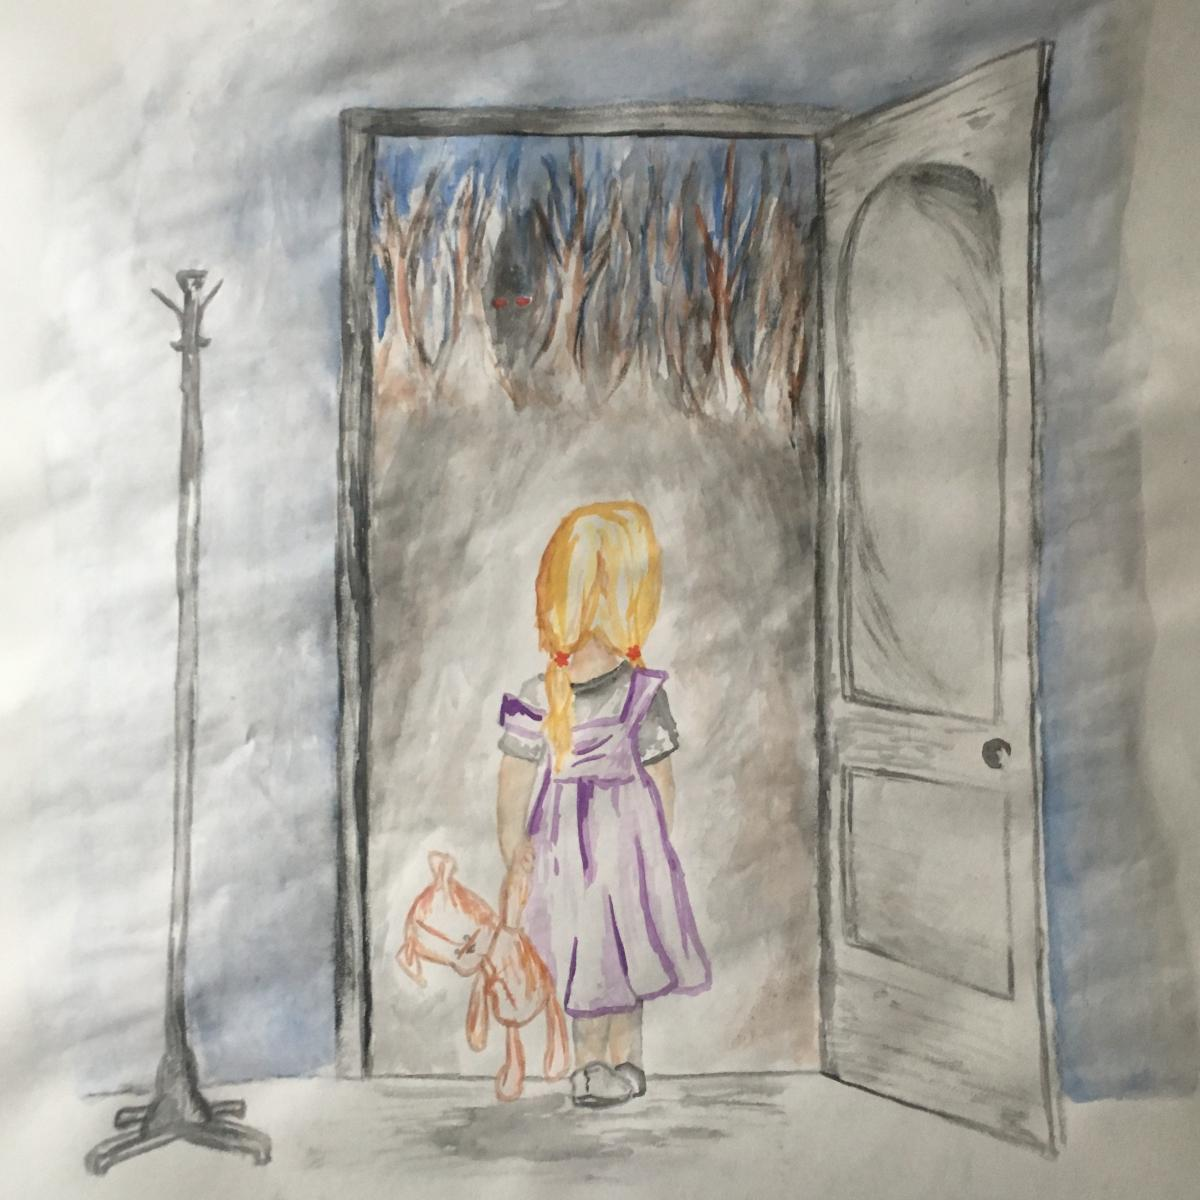 Water color drawing of young girl looking outside an open door with a tall floor lamp adjacent to the door.